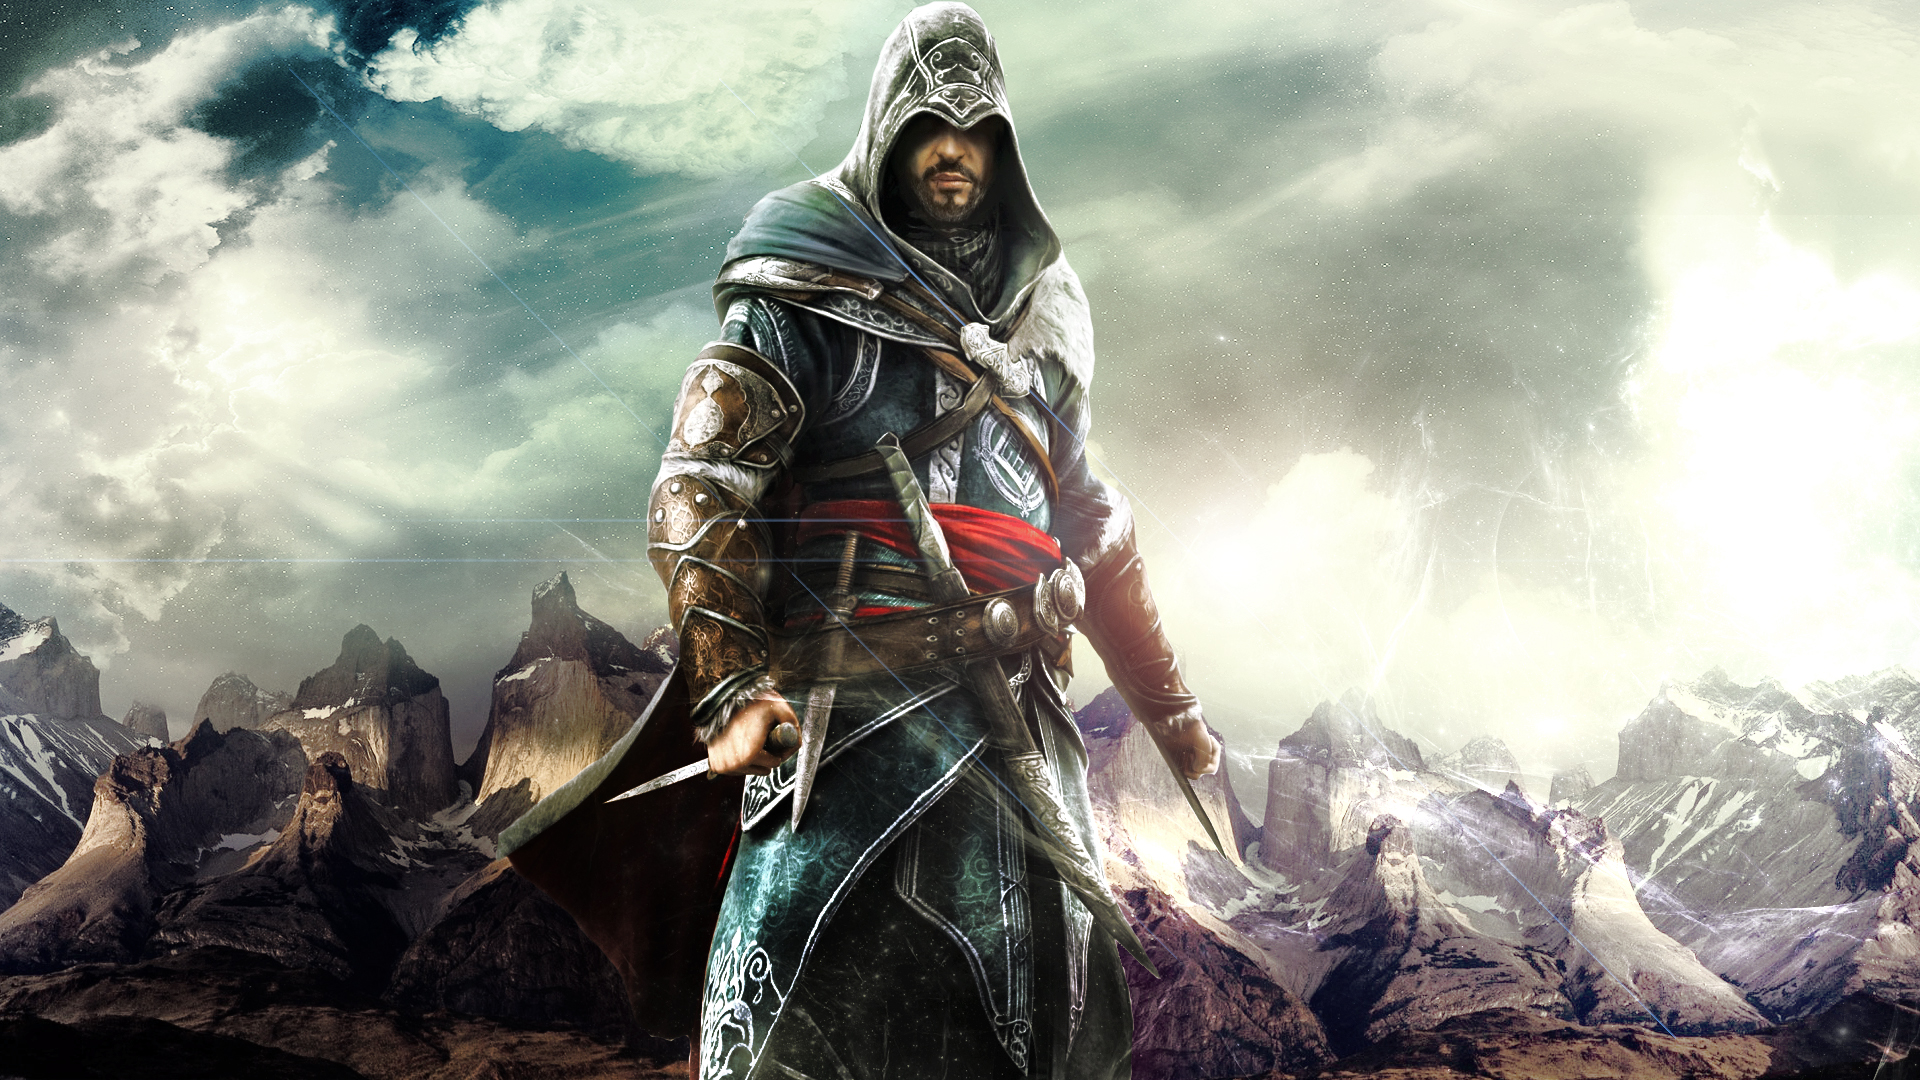 This week's Deals with Gold feature Assassin's Creed and Rainbow Six Siege 1